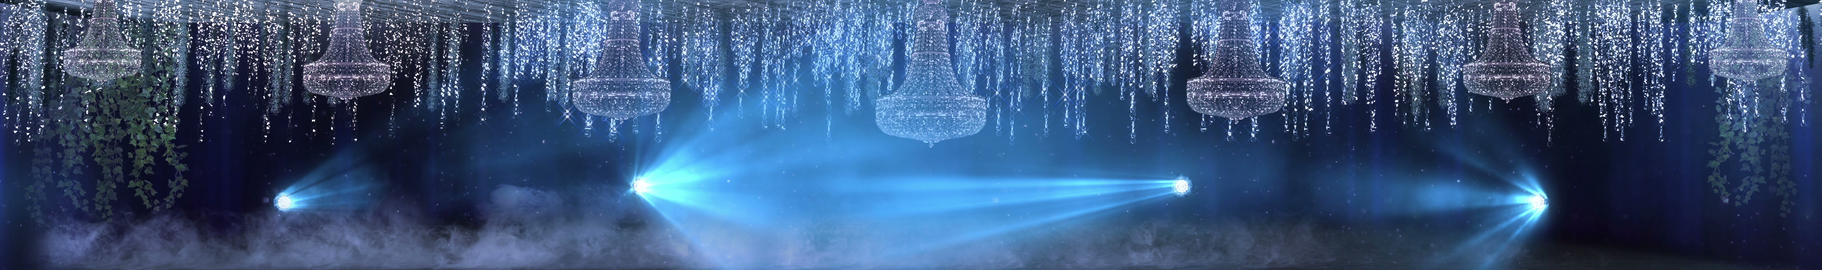 Low Fog And Chandeliers Animation